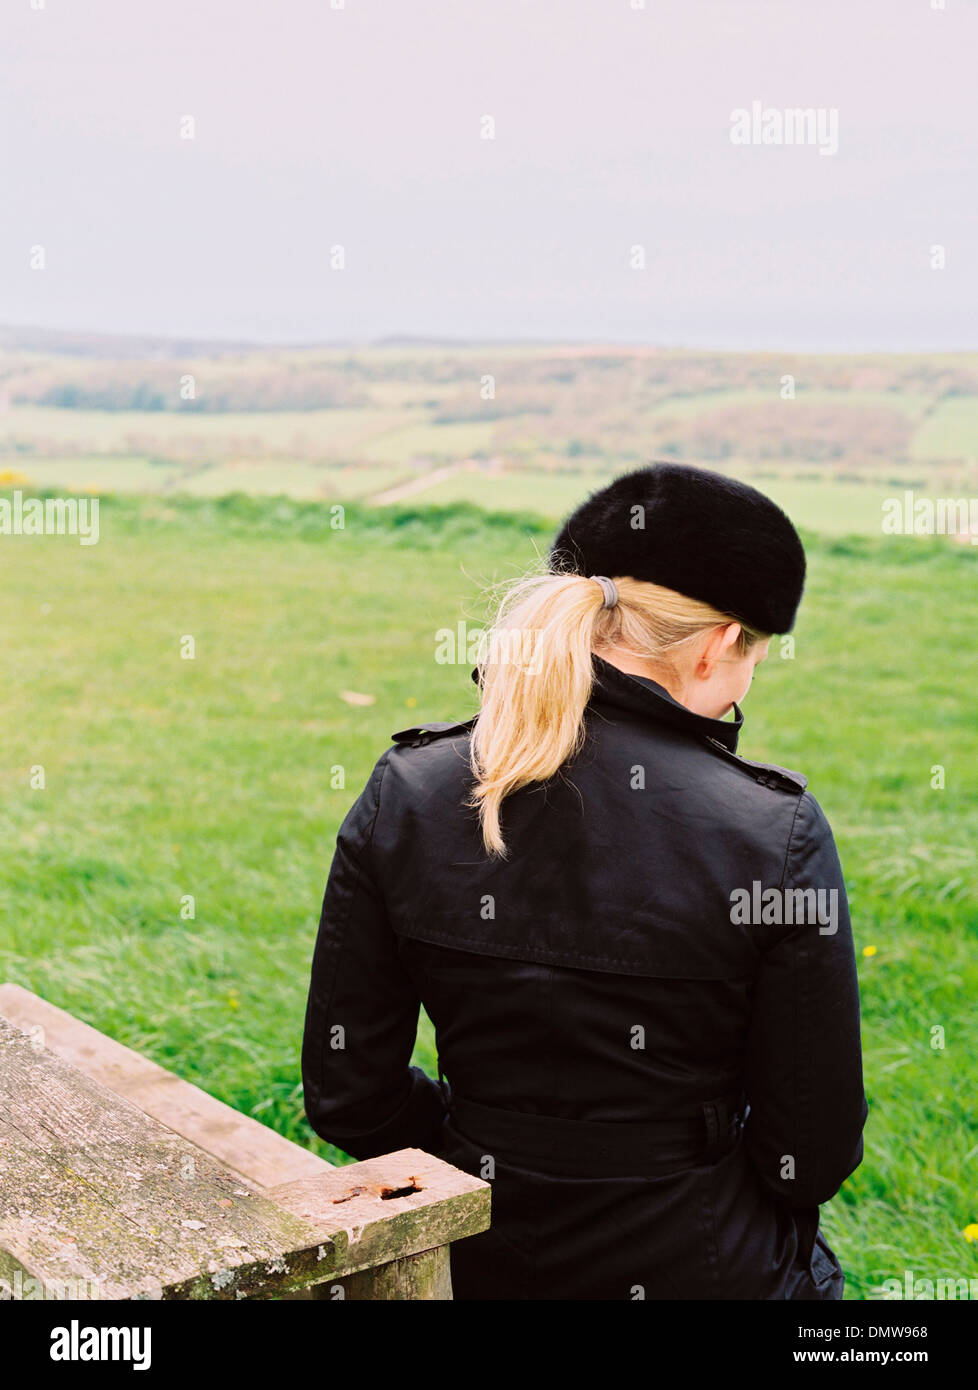 A woman seated on a bench looking over  landscape to  sea. - Stock Image